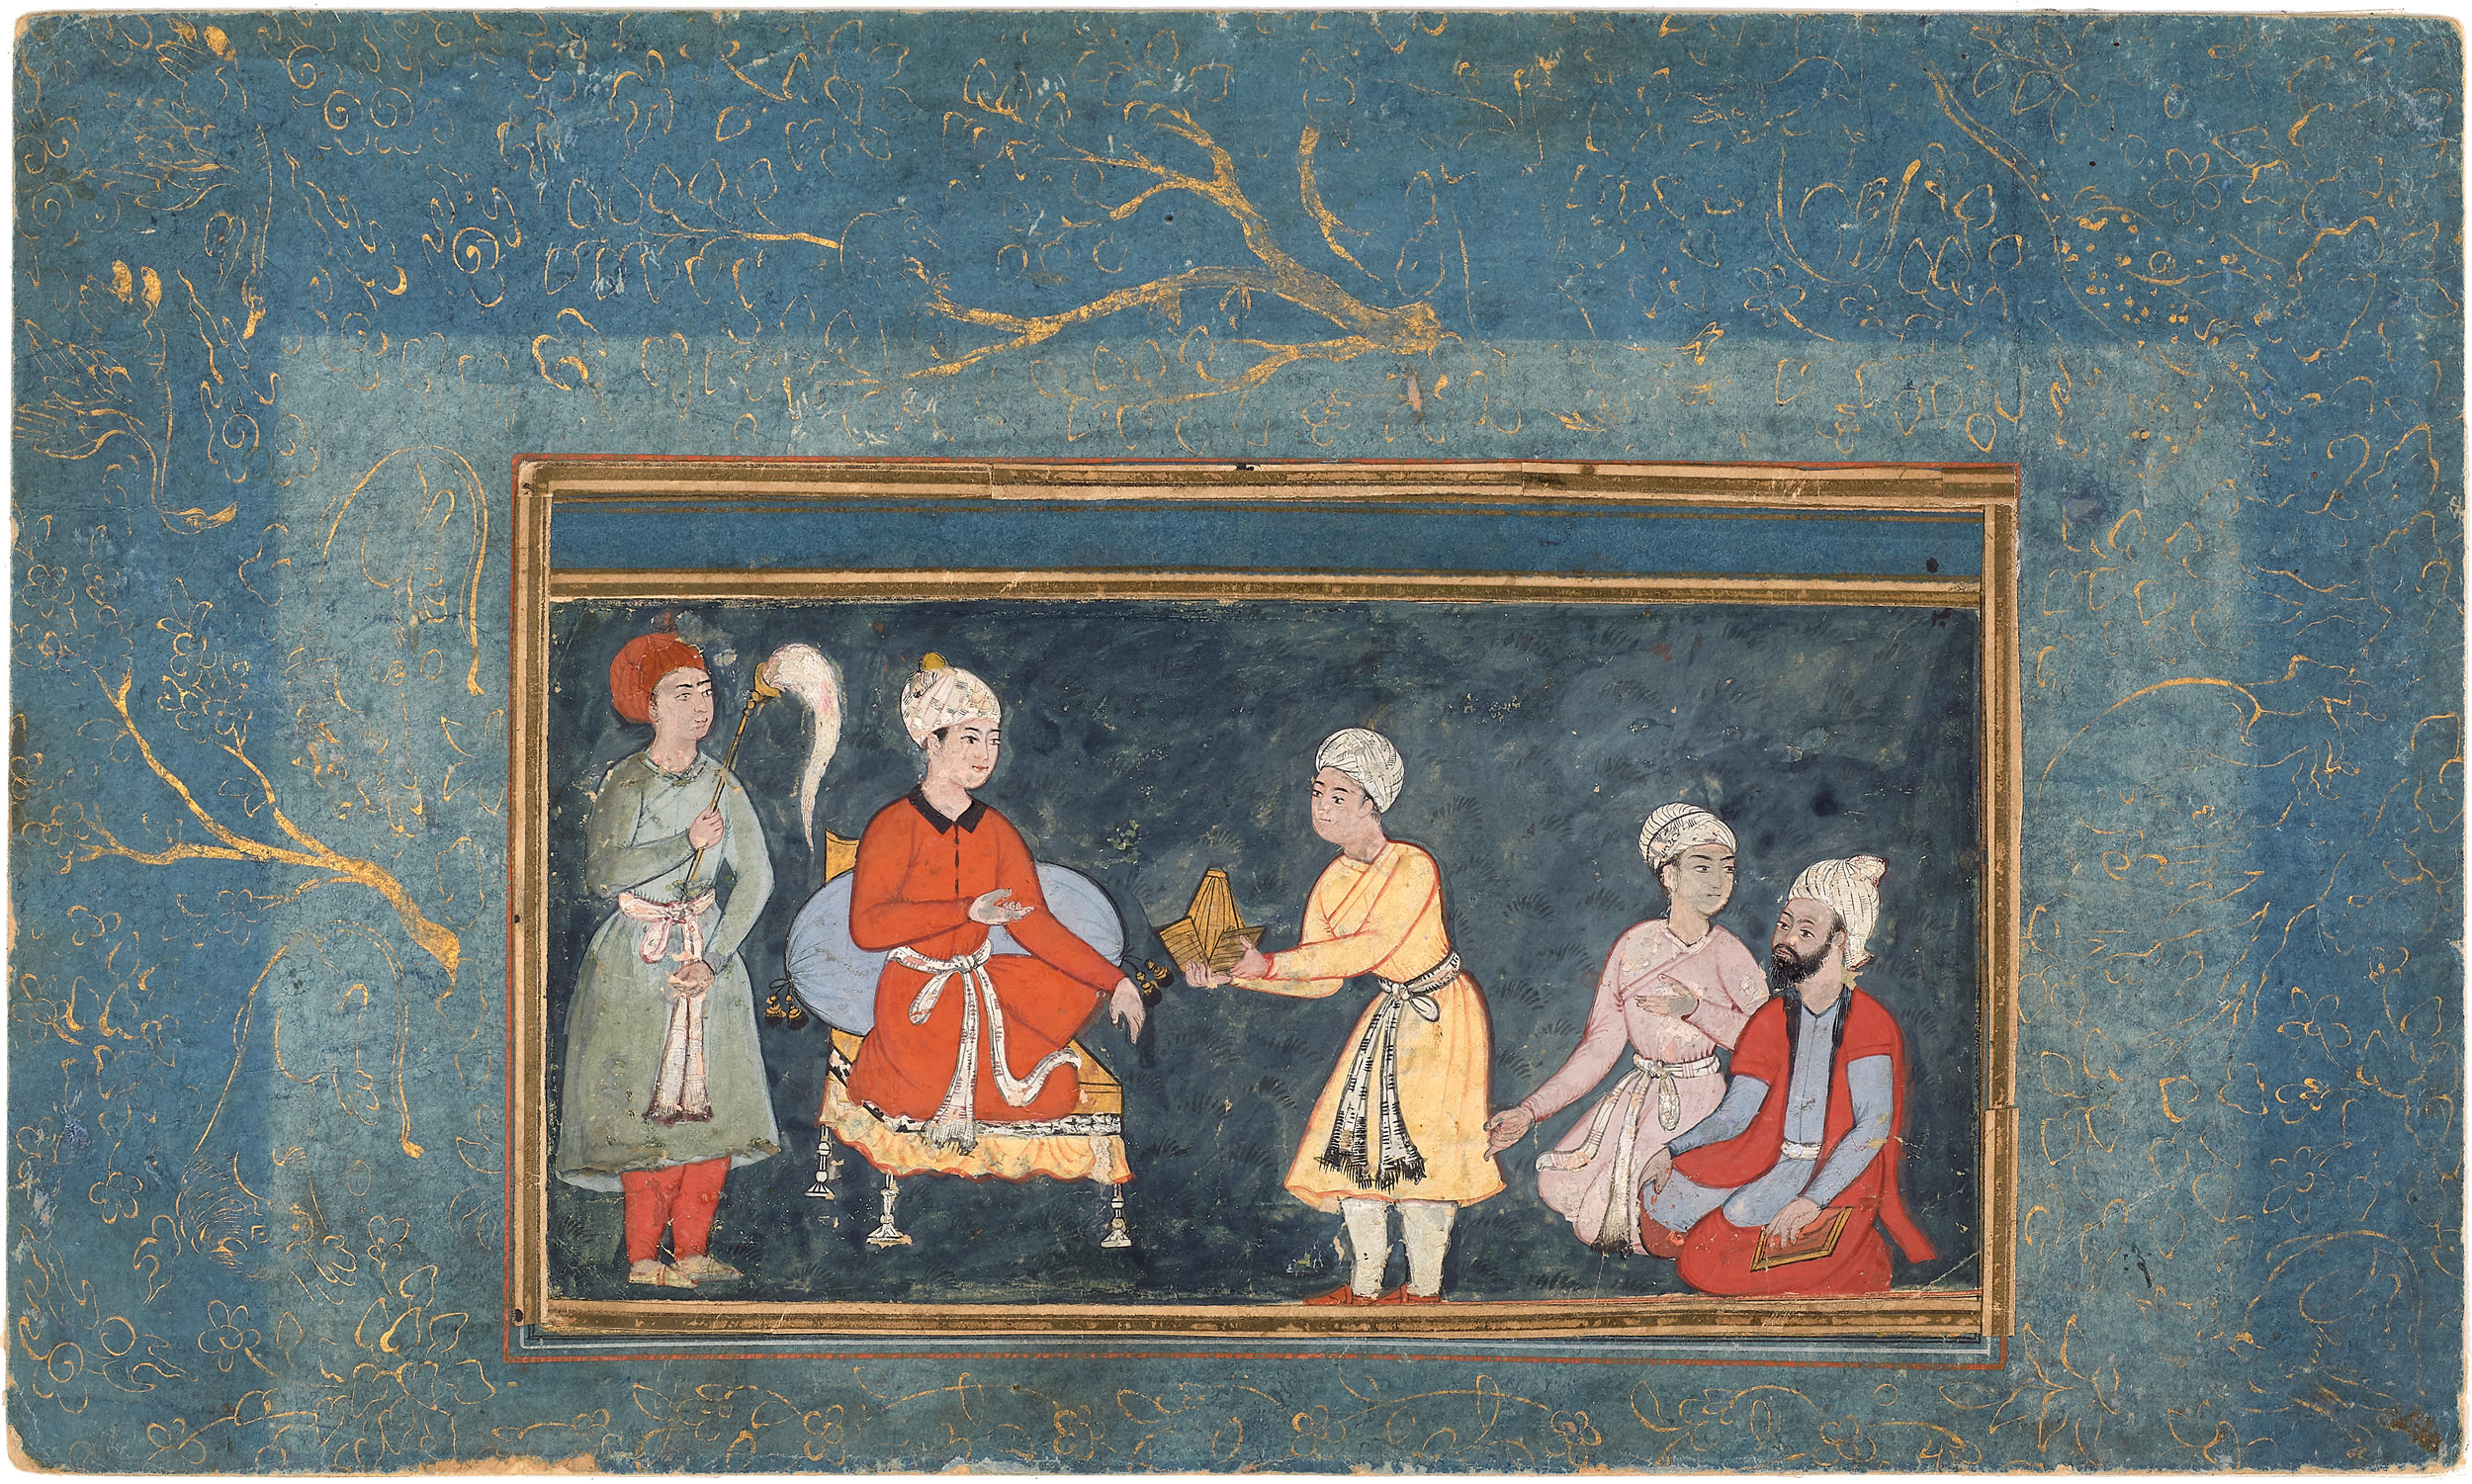 An Enthroned Prince Receives a Turban